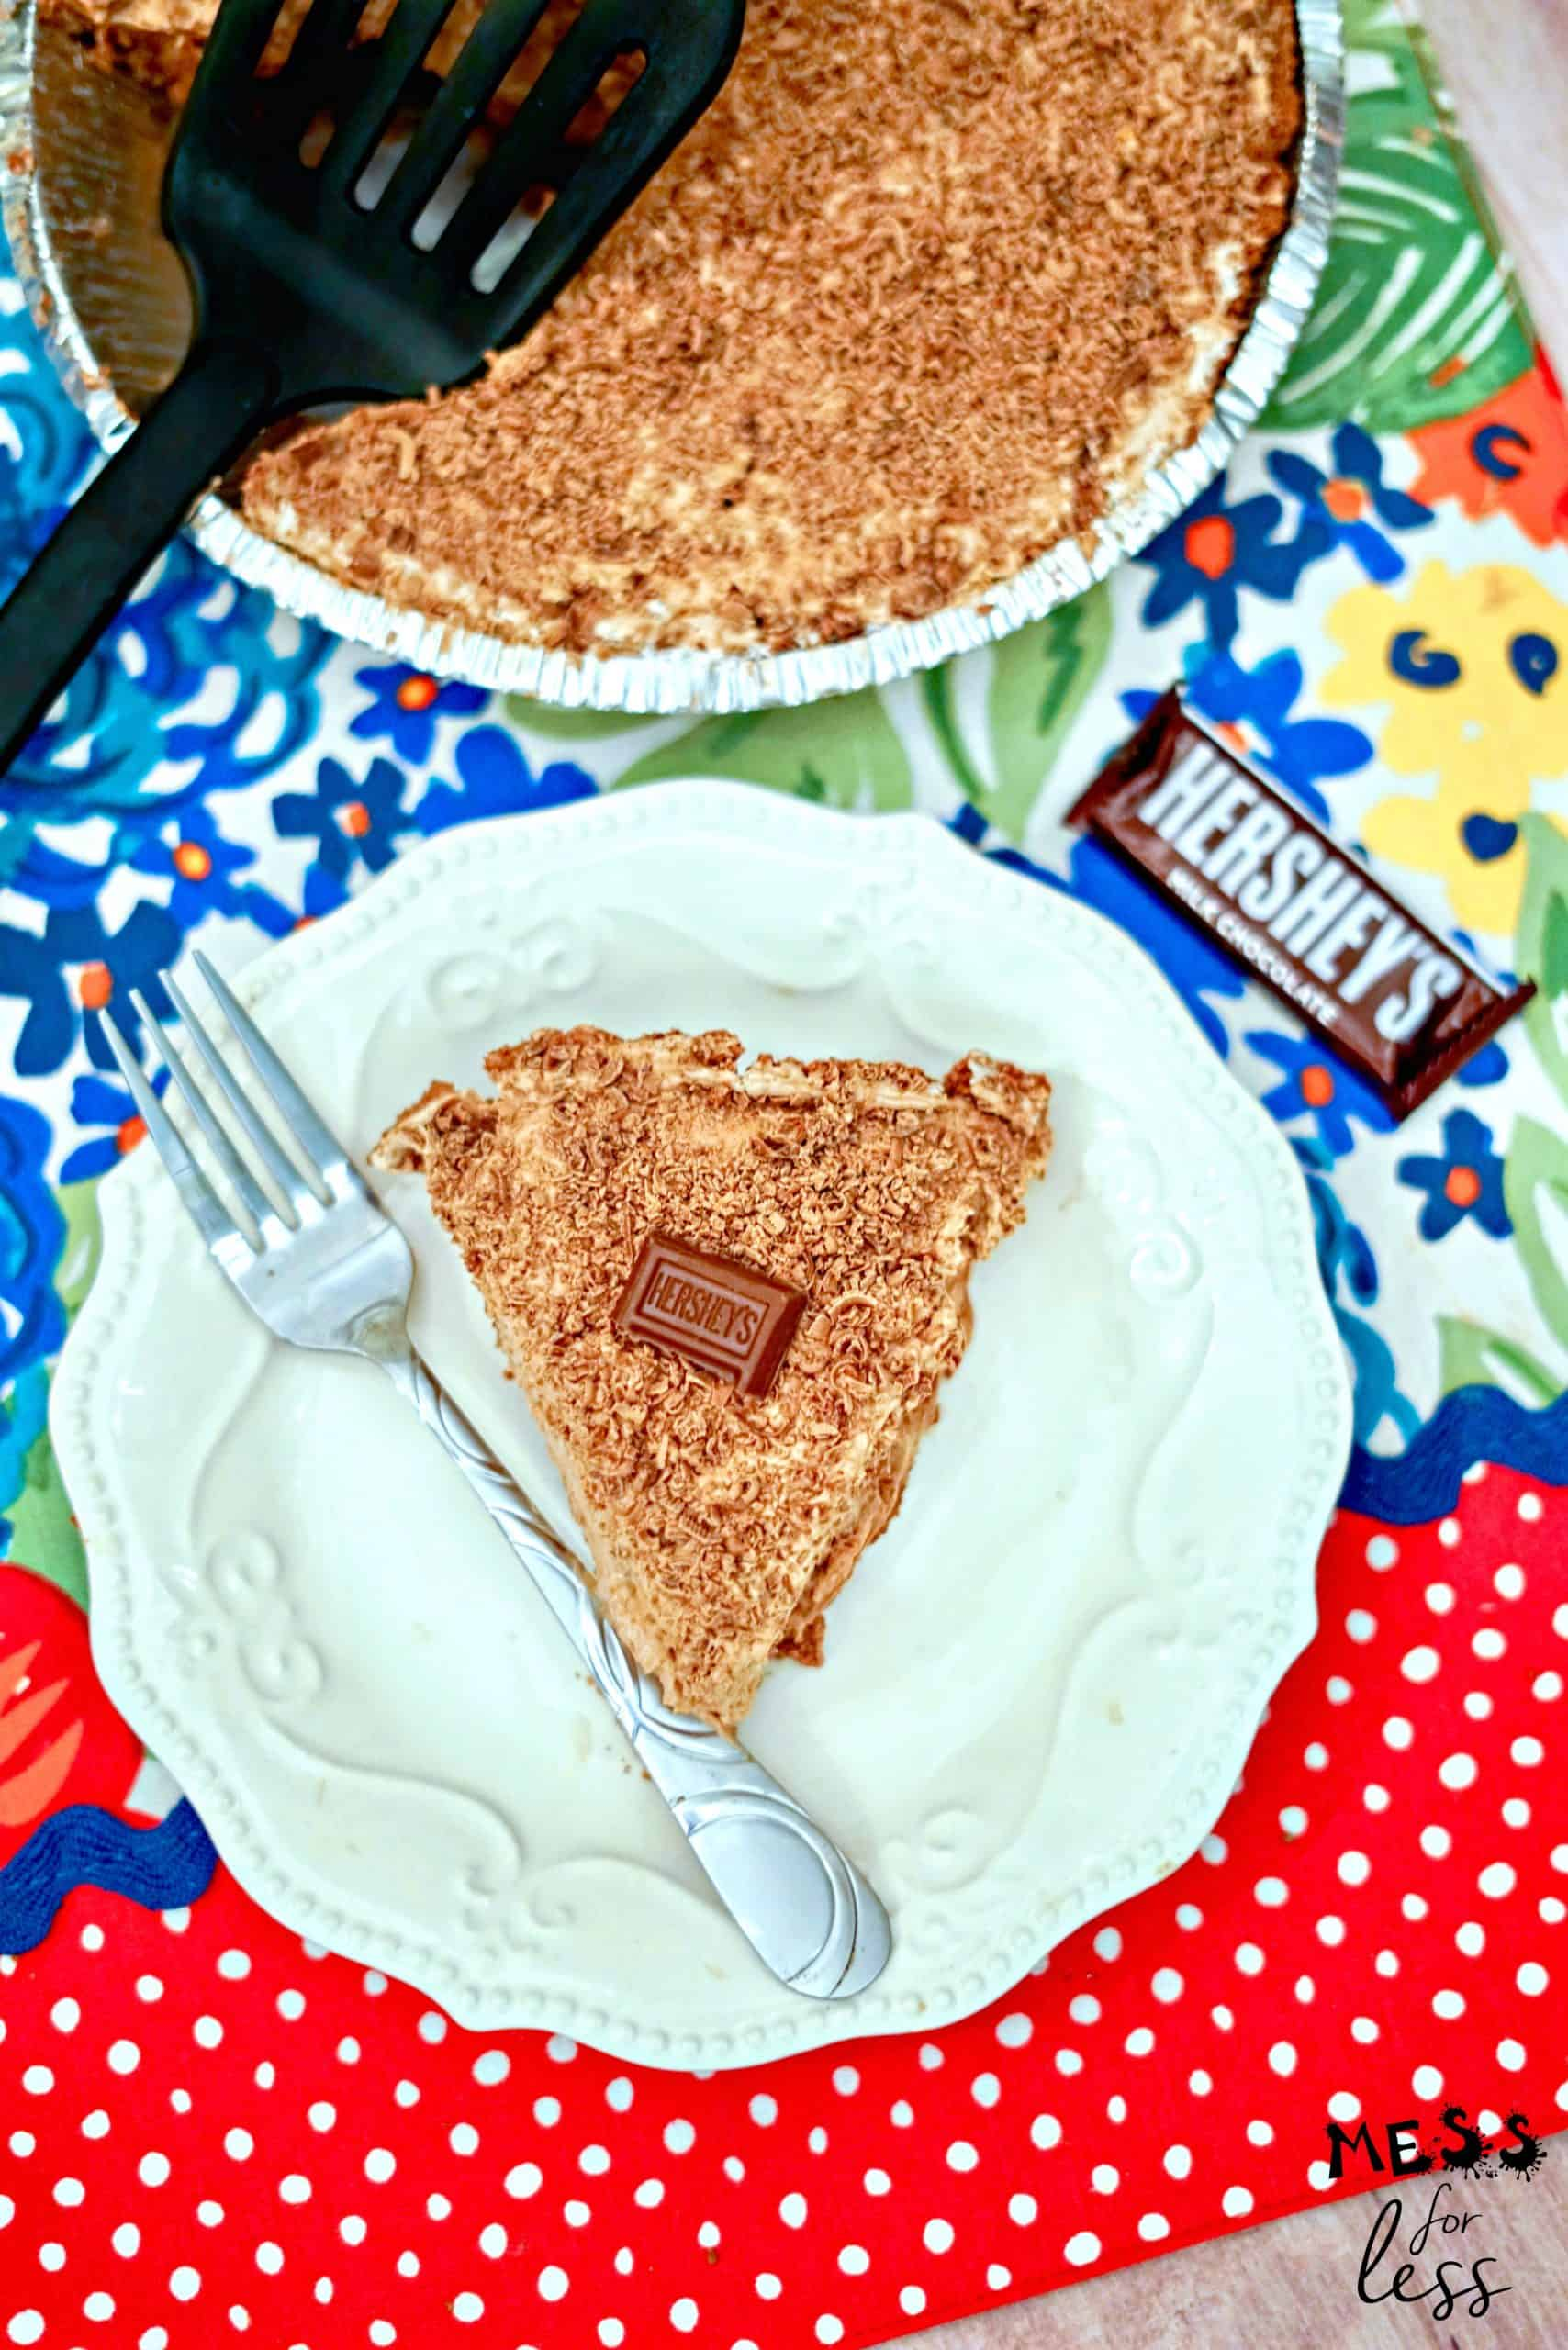 slice of Hershey's Chocolate Pie